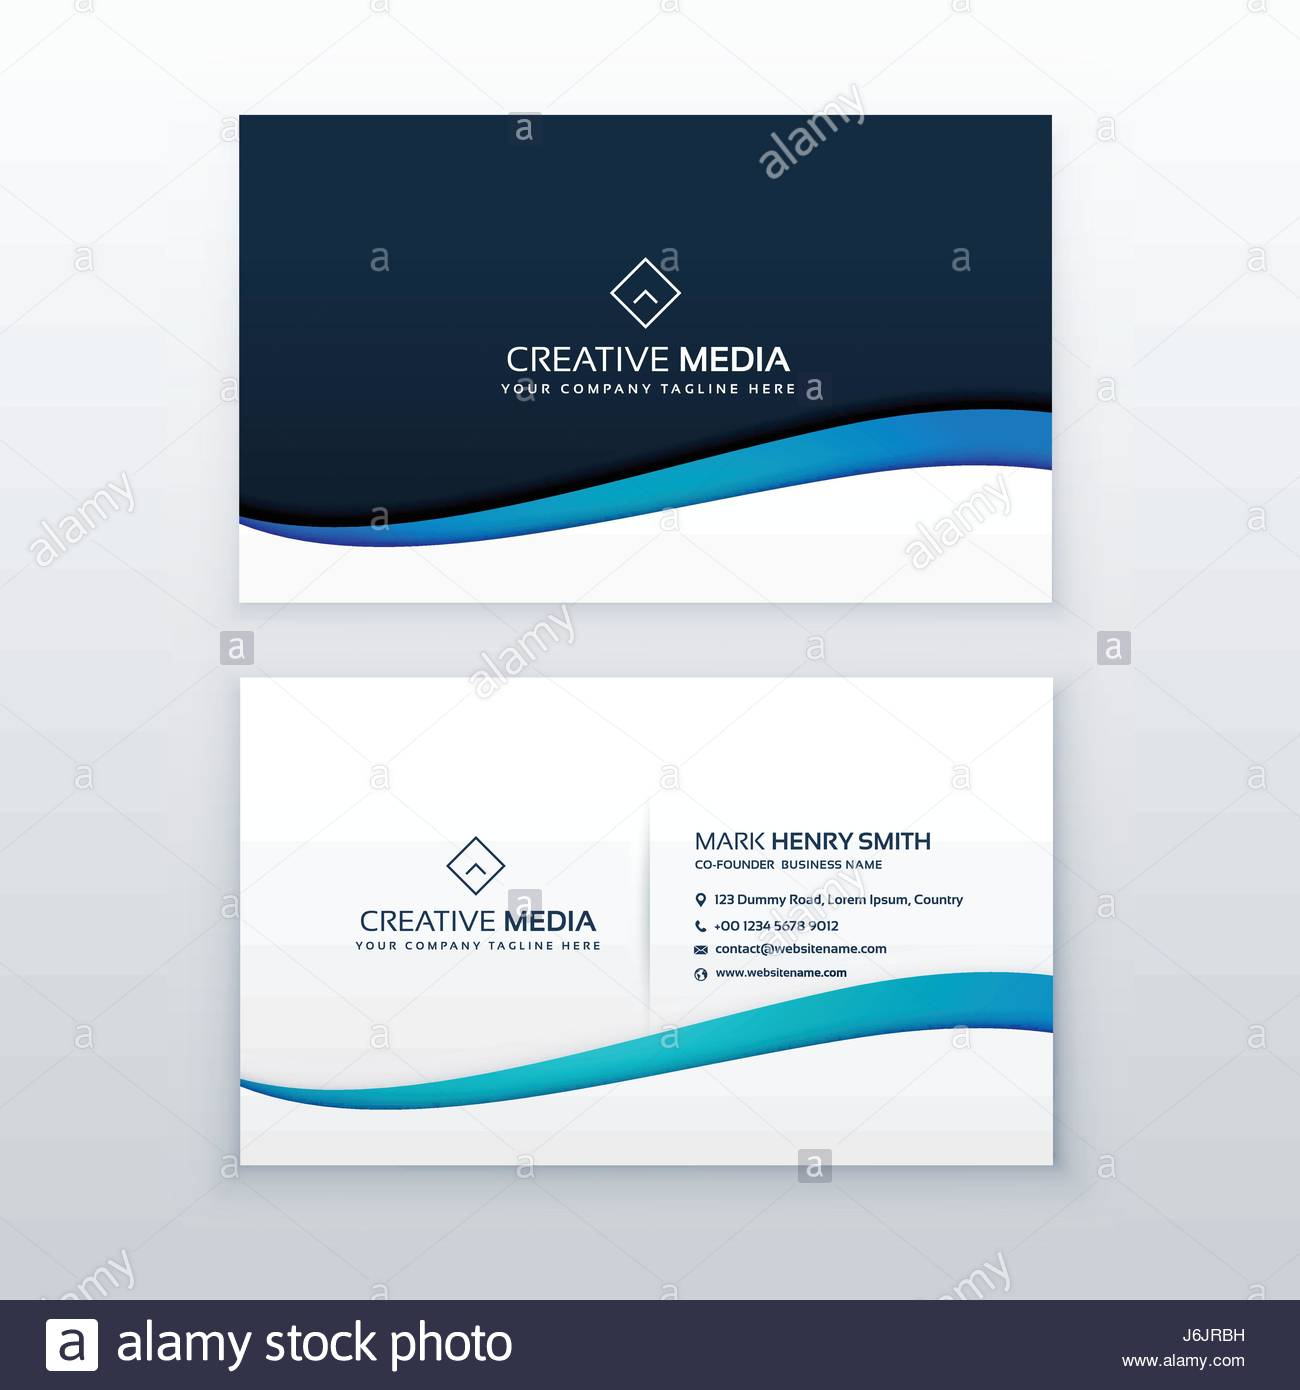 Clean blue wave business card design template stock vector art clean blue wave business card design template colourmoves